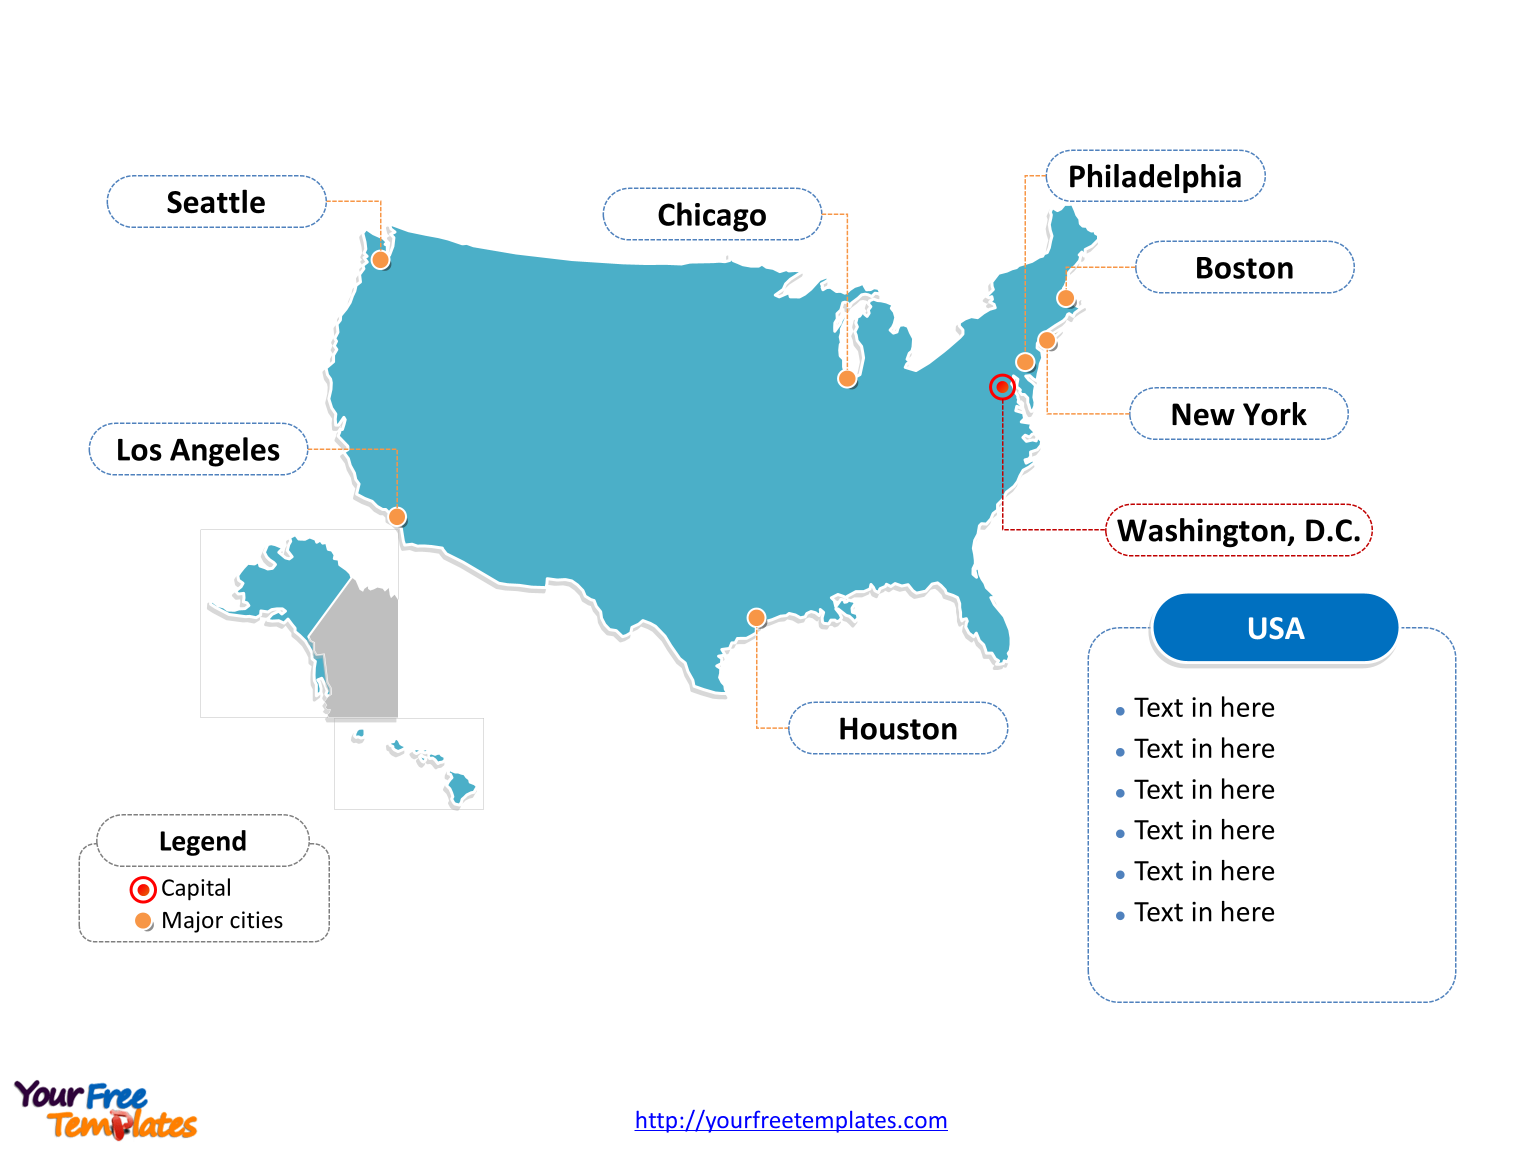 Free USA PowerPoint Map Free PowerPoint Templates - Los angeles us map